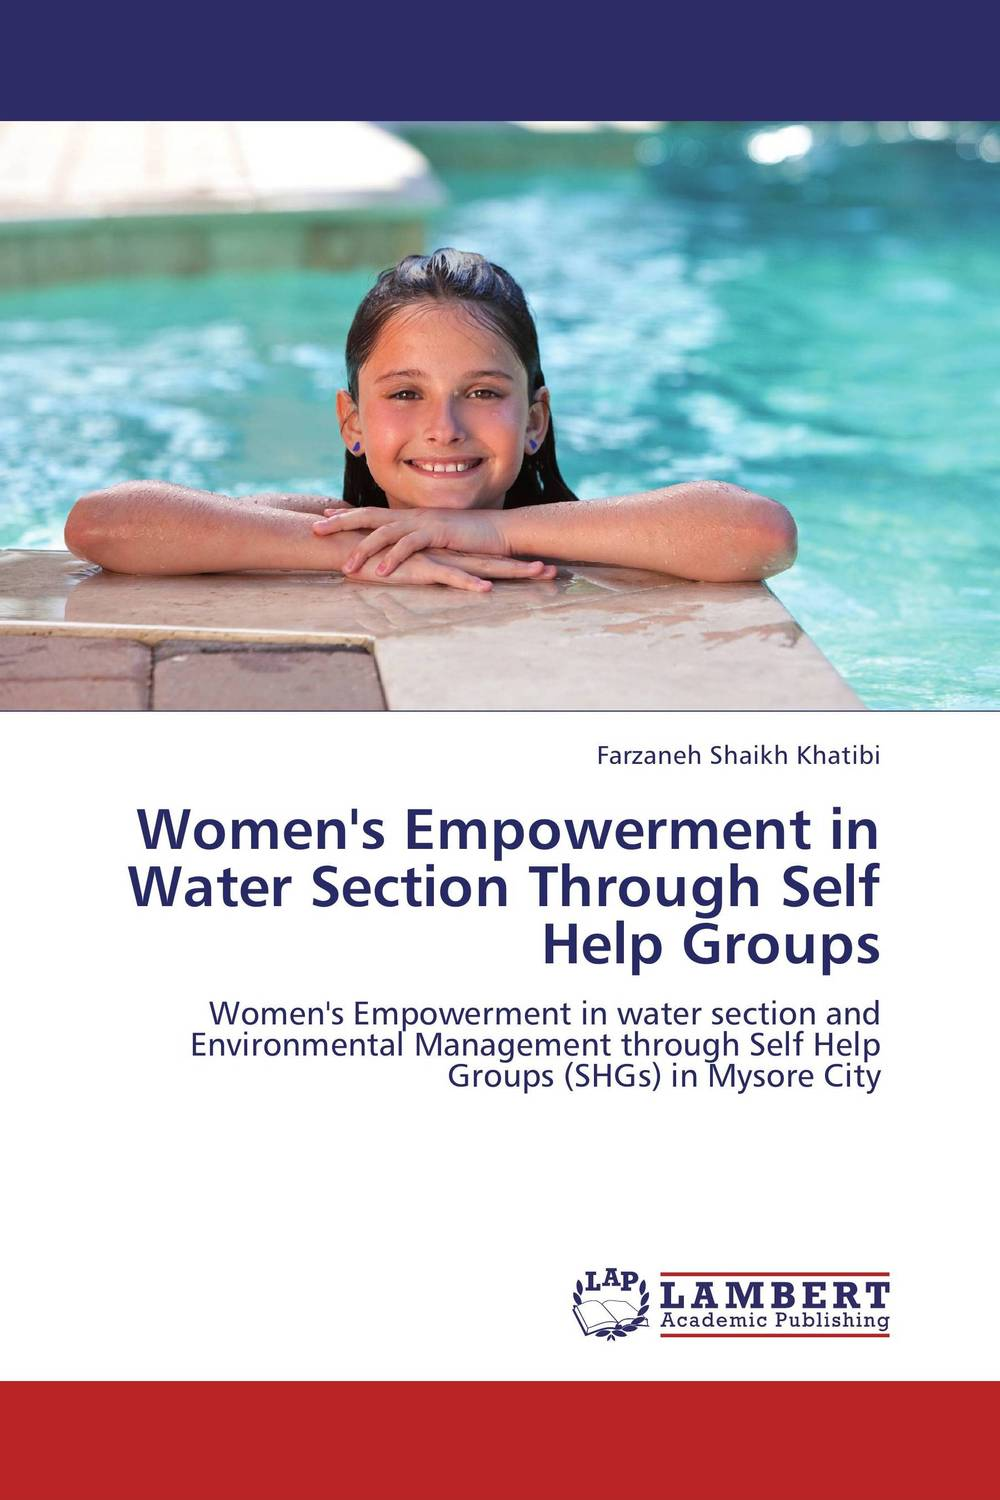 Women's Empowerment in Water Section Through Self Help Groups empowerment of women through self help groups